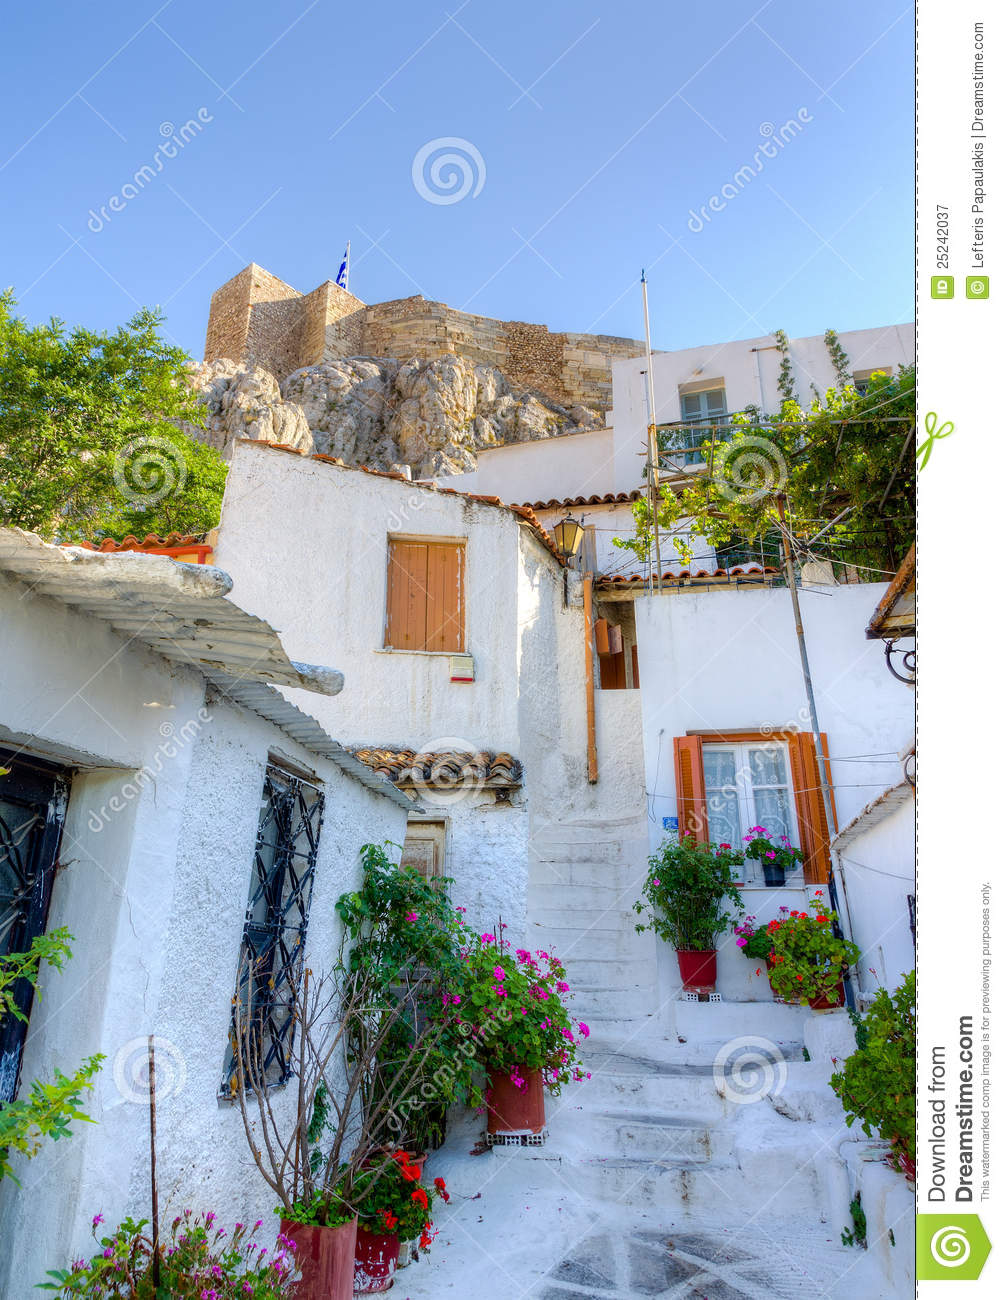 Traditional Houses At Plaka, Athens, Greece Royalty Free ...